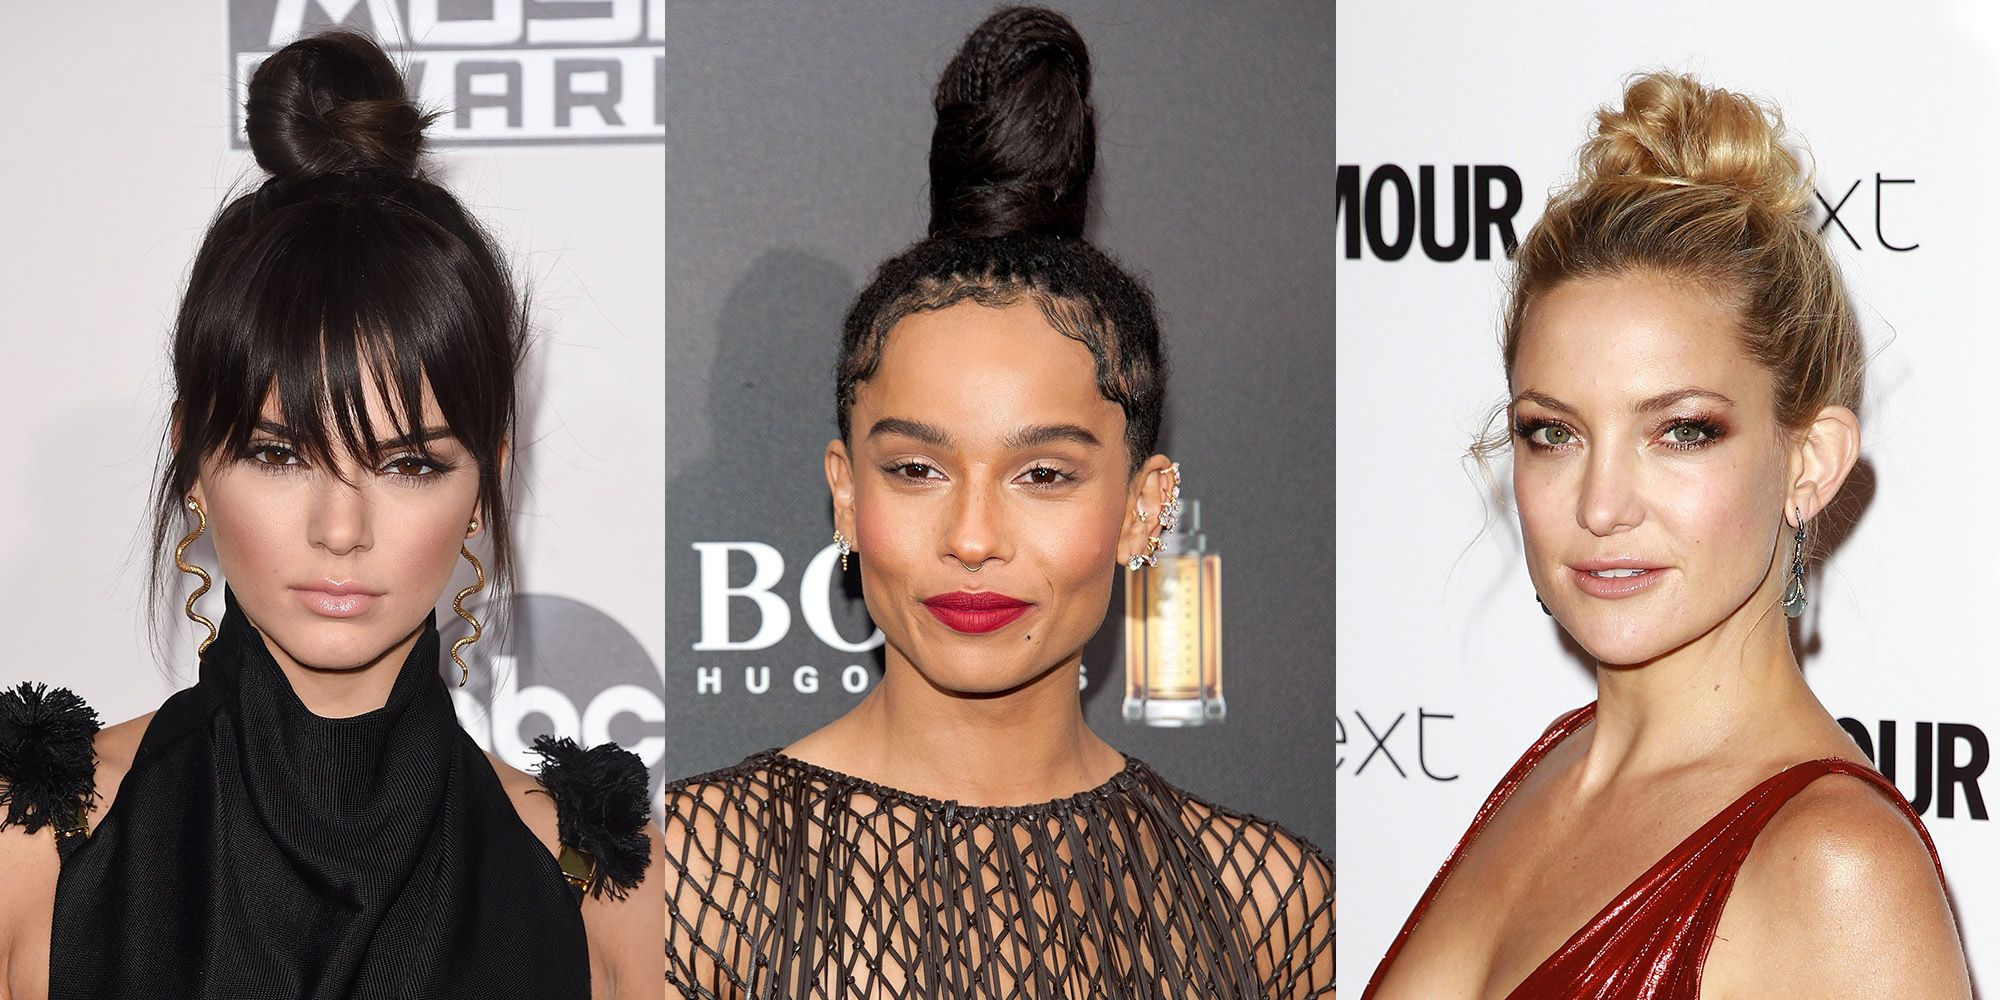 Three women with top knots of varying heights